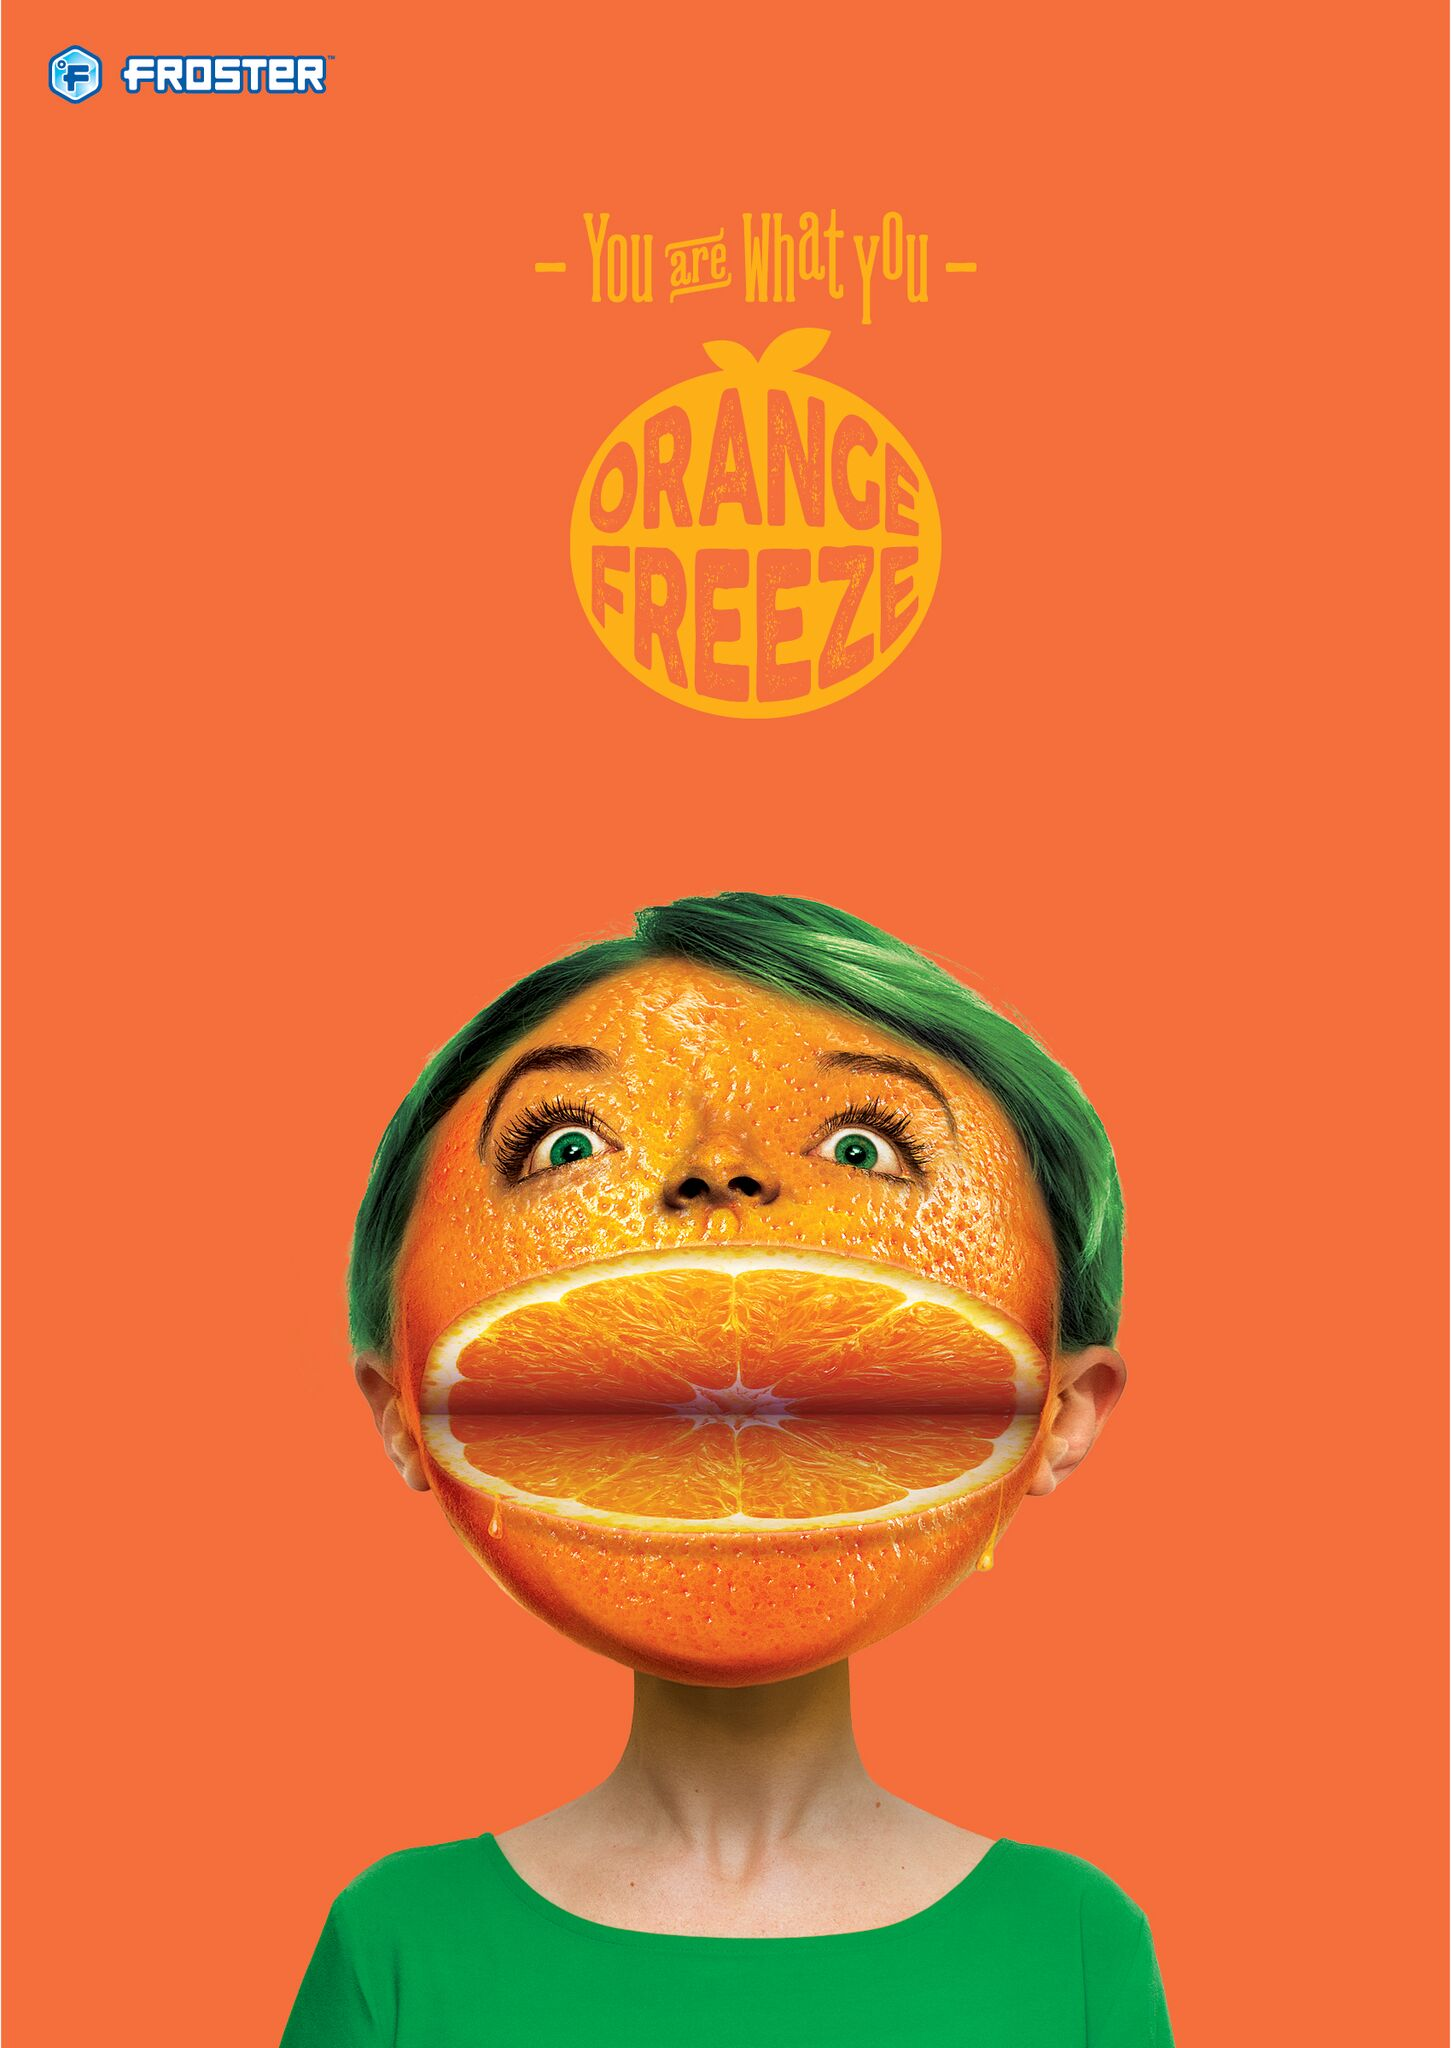 Mac's Froster - orange freeze poster